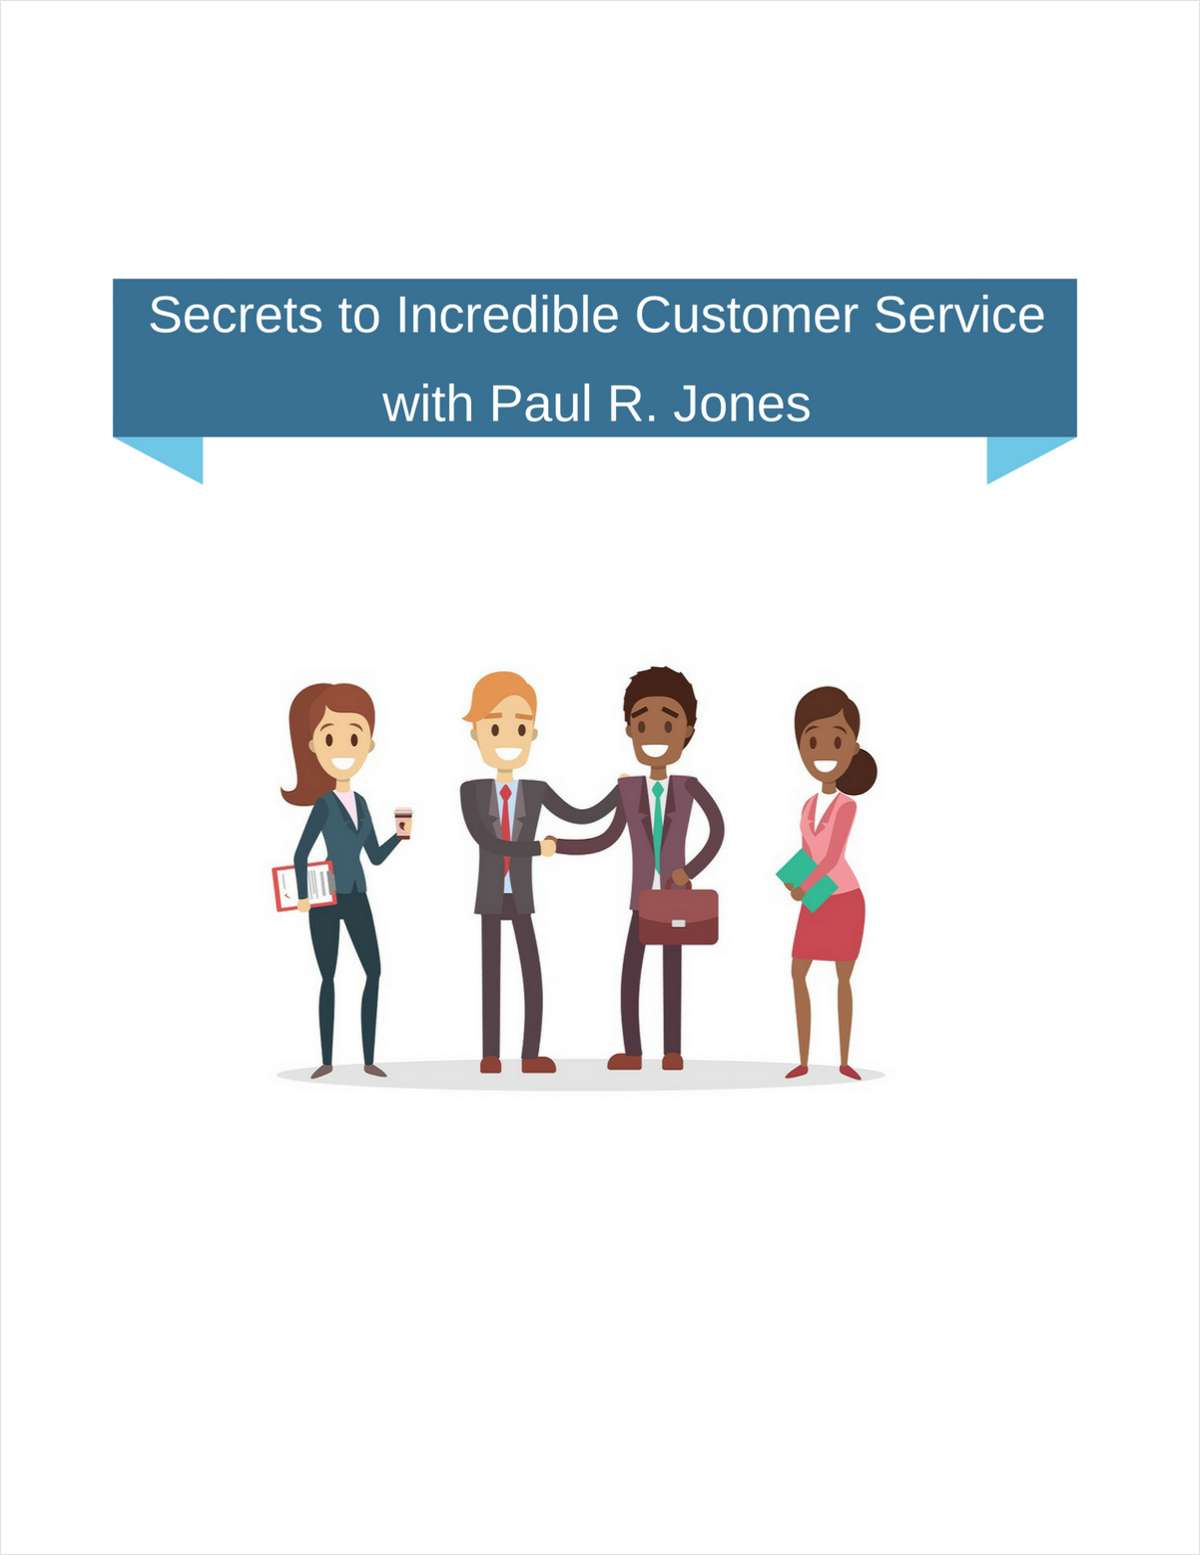 Secrets to Incredible Customer Service with Paul R. Jones